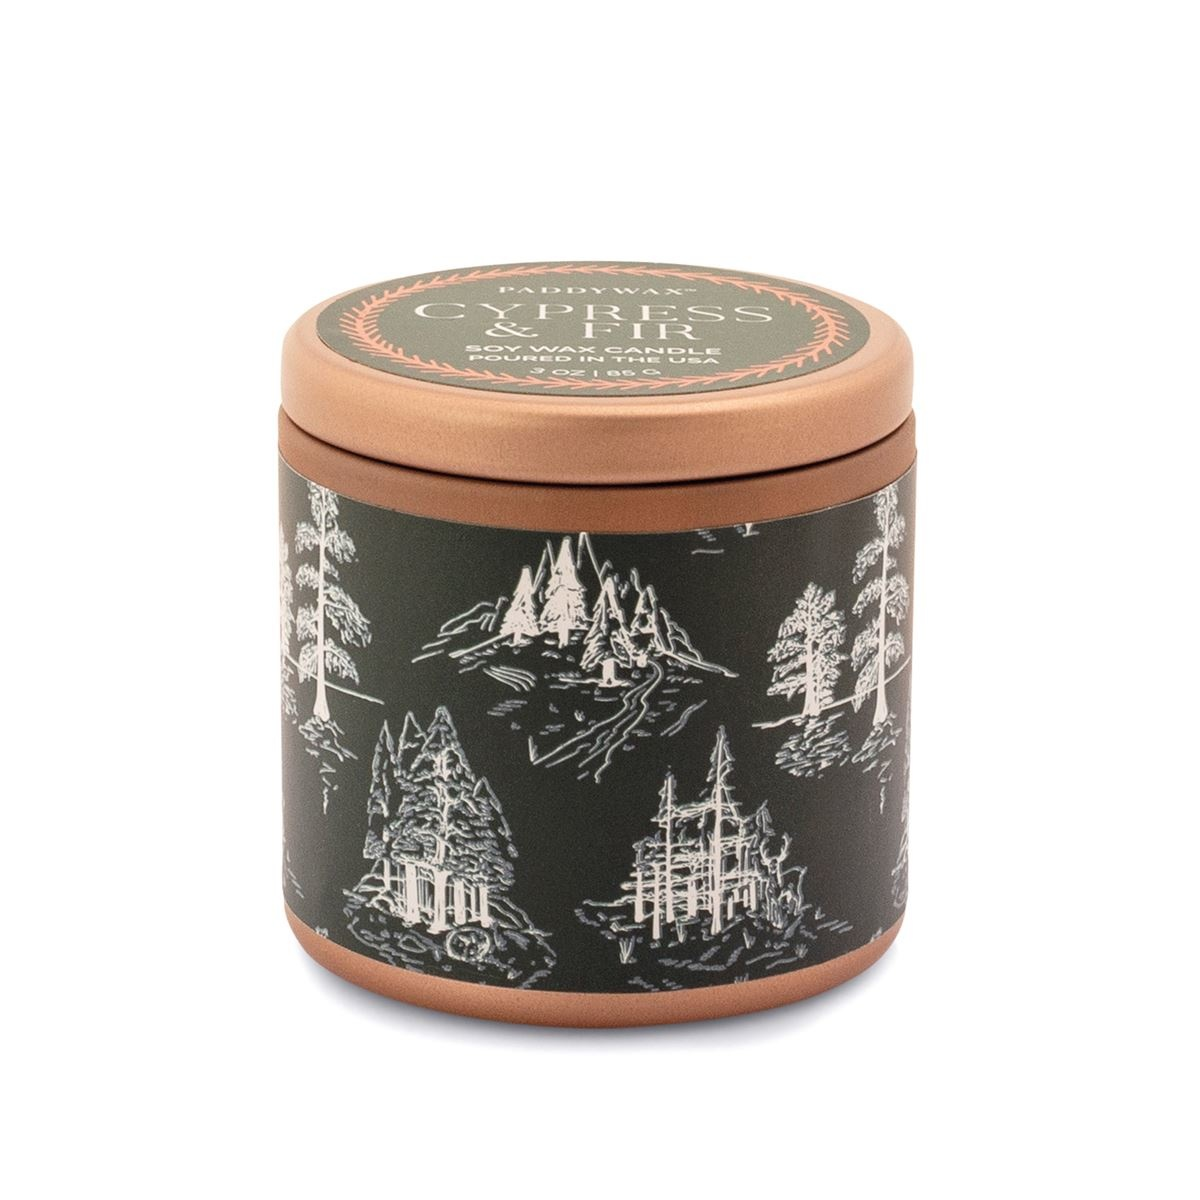 Paddywax - PA Cypress & Fir 3oz. Copper Tin with Green Label